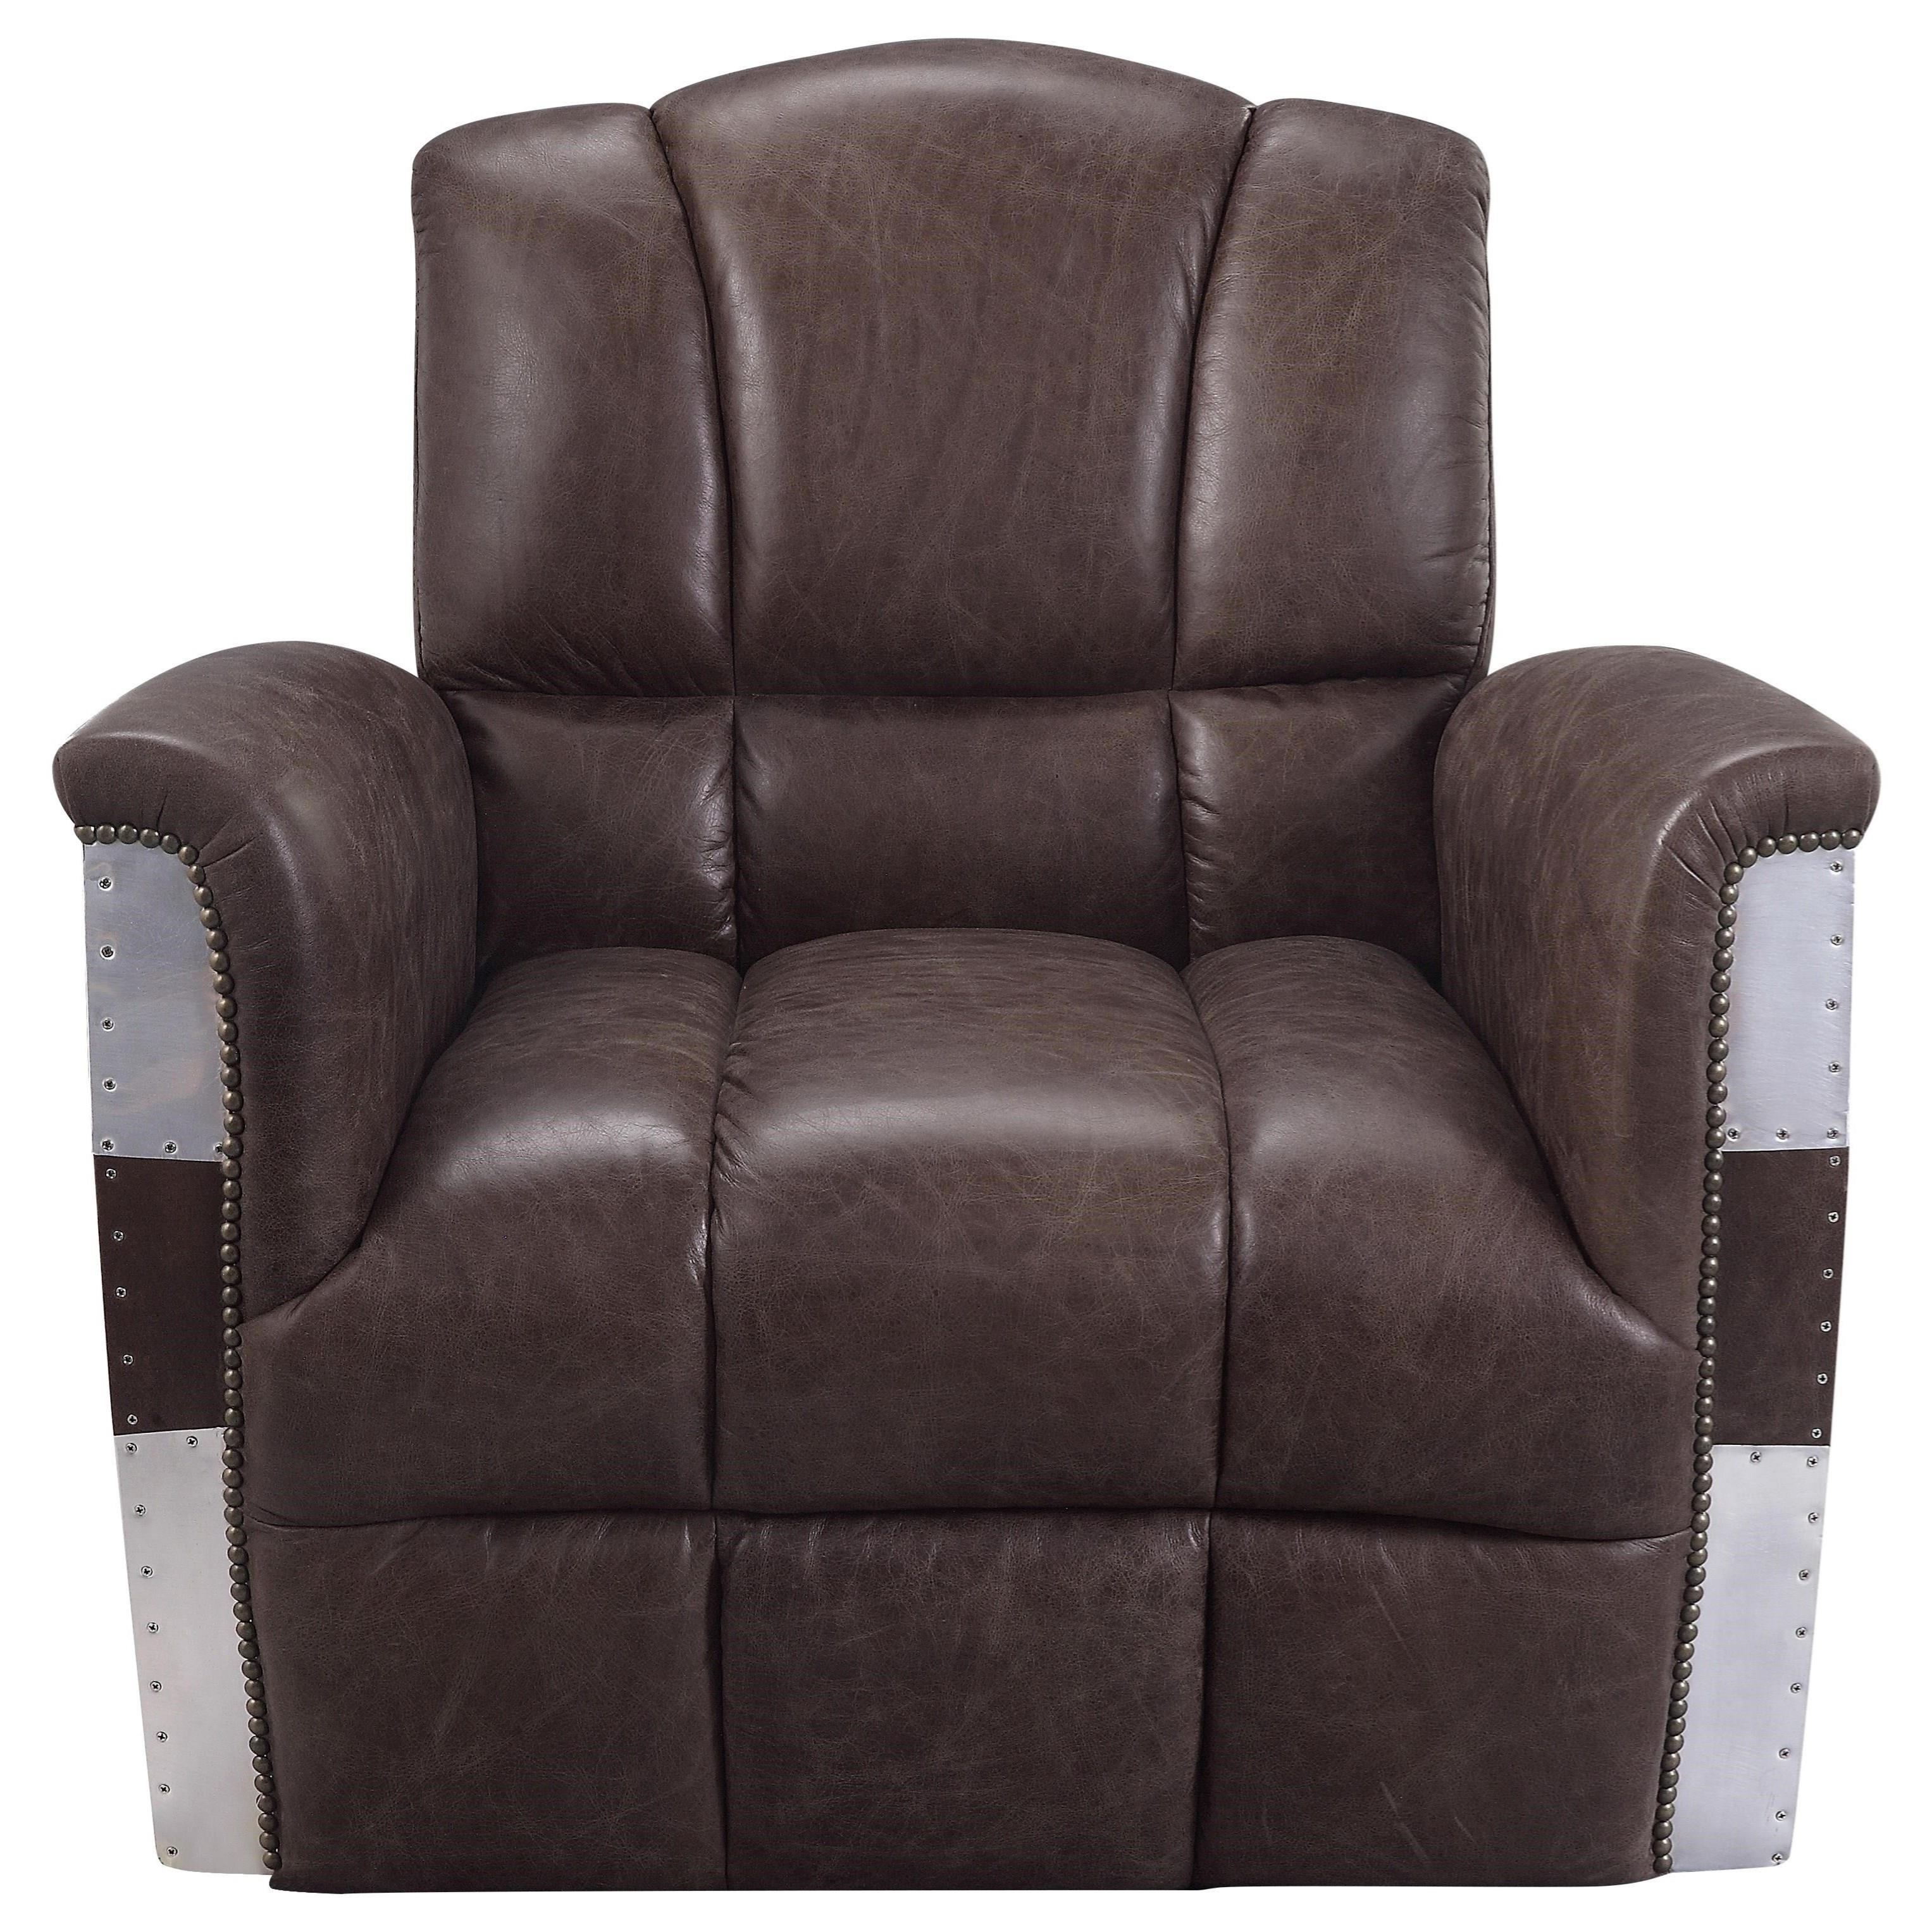 Brancaster Accent Chair by Acme Furniture at A1 Furniture & Mattress